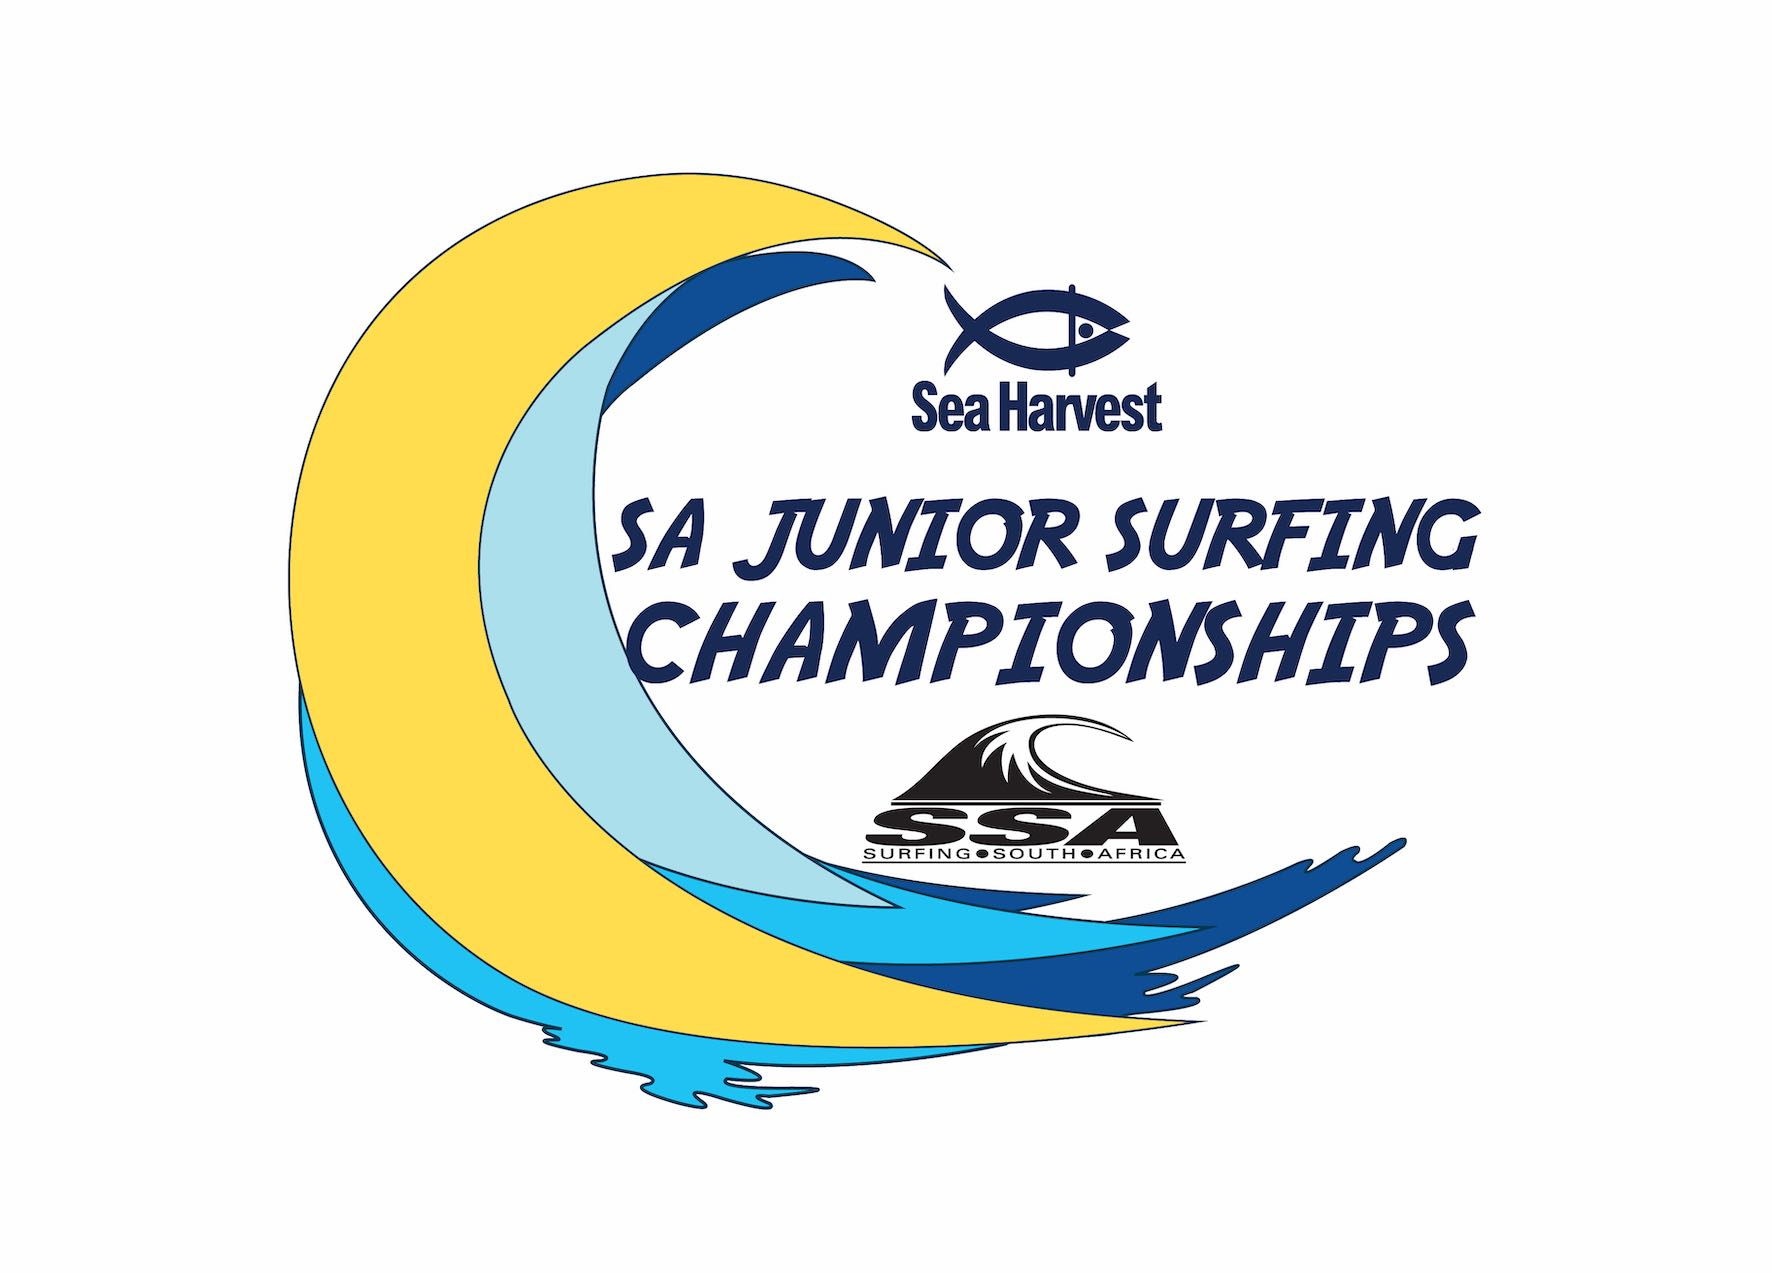 After another long day of surfing in small onshore surf Day 3 of the 2019 Sea Harvest SA Junior Surfing Championships moved into the final rounds of competition at Lower Point in Jeffreys Bay.